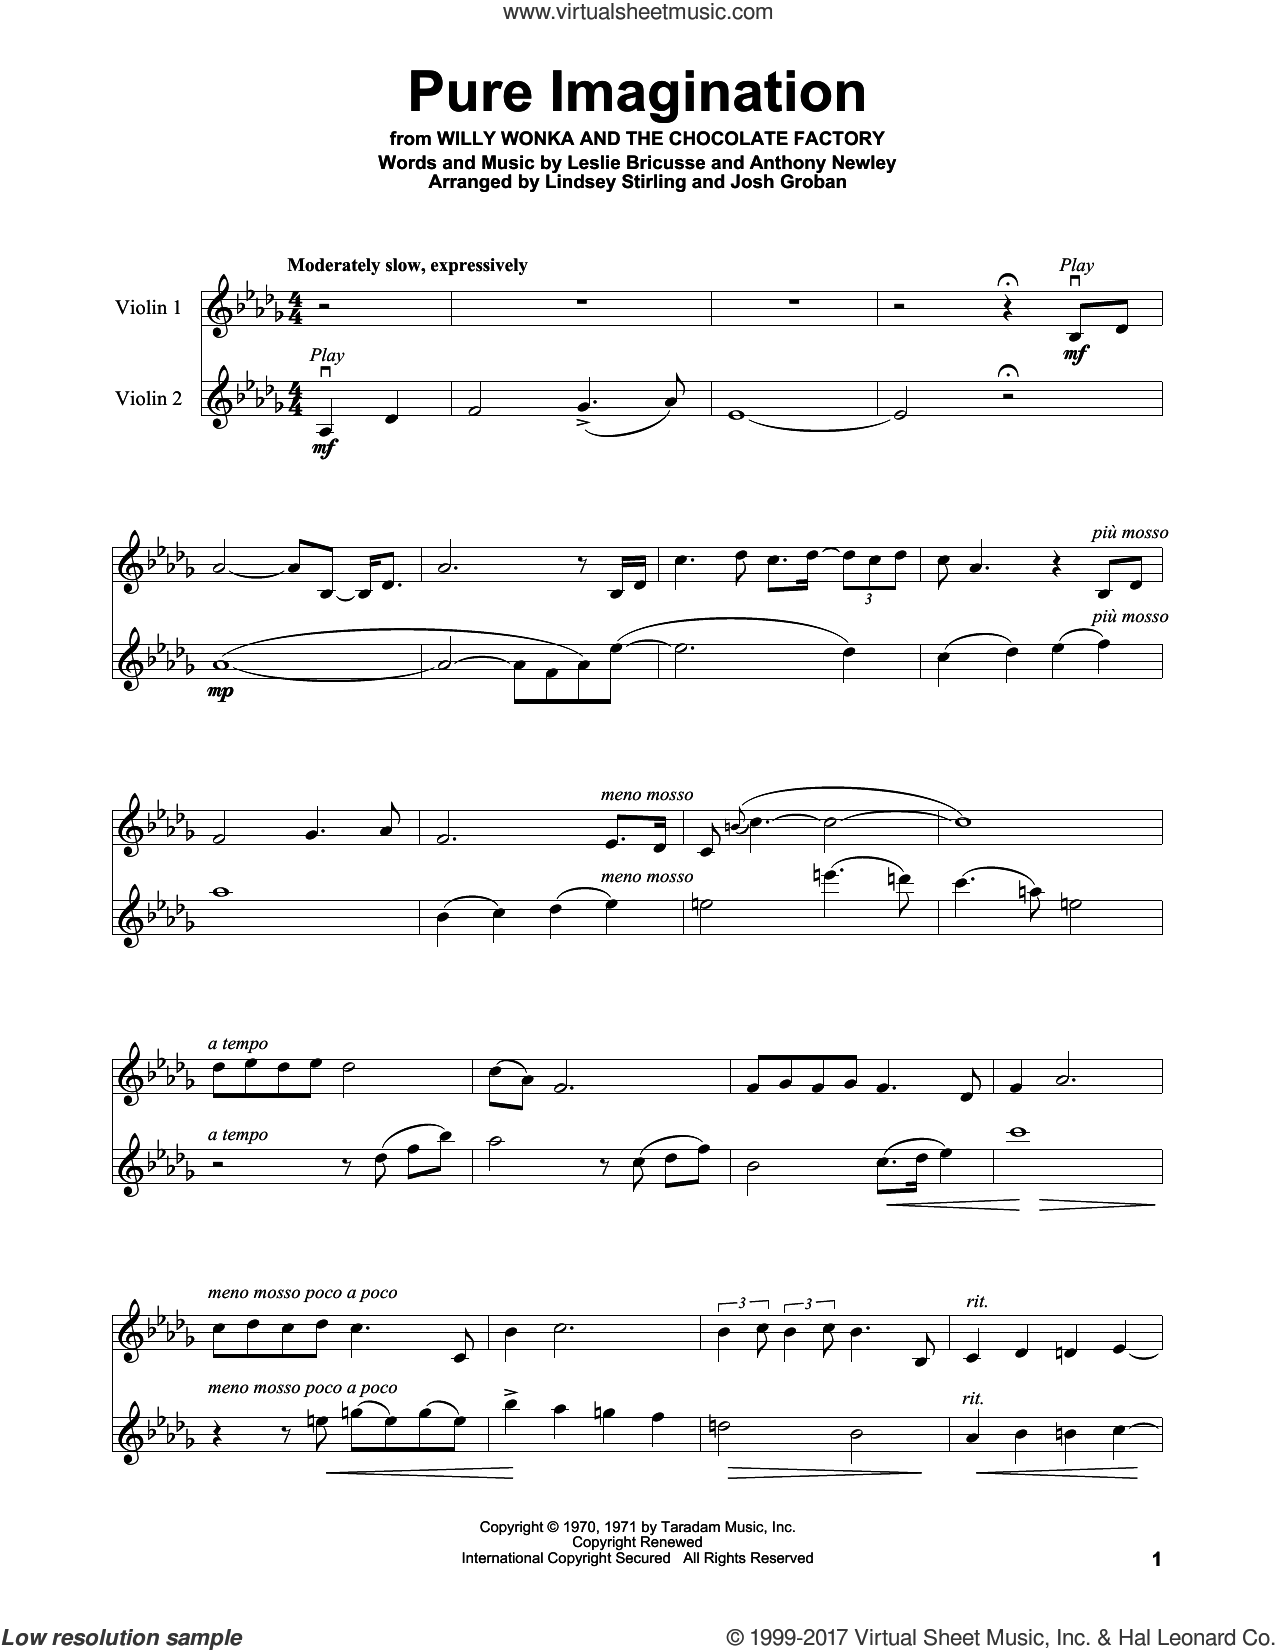 Pure Imagination sheet music for violin solo by Lindsey Stirling, Anthony Newley and Leslie Bricusse, intermediate skill level